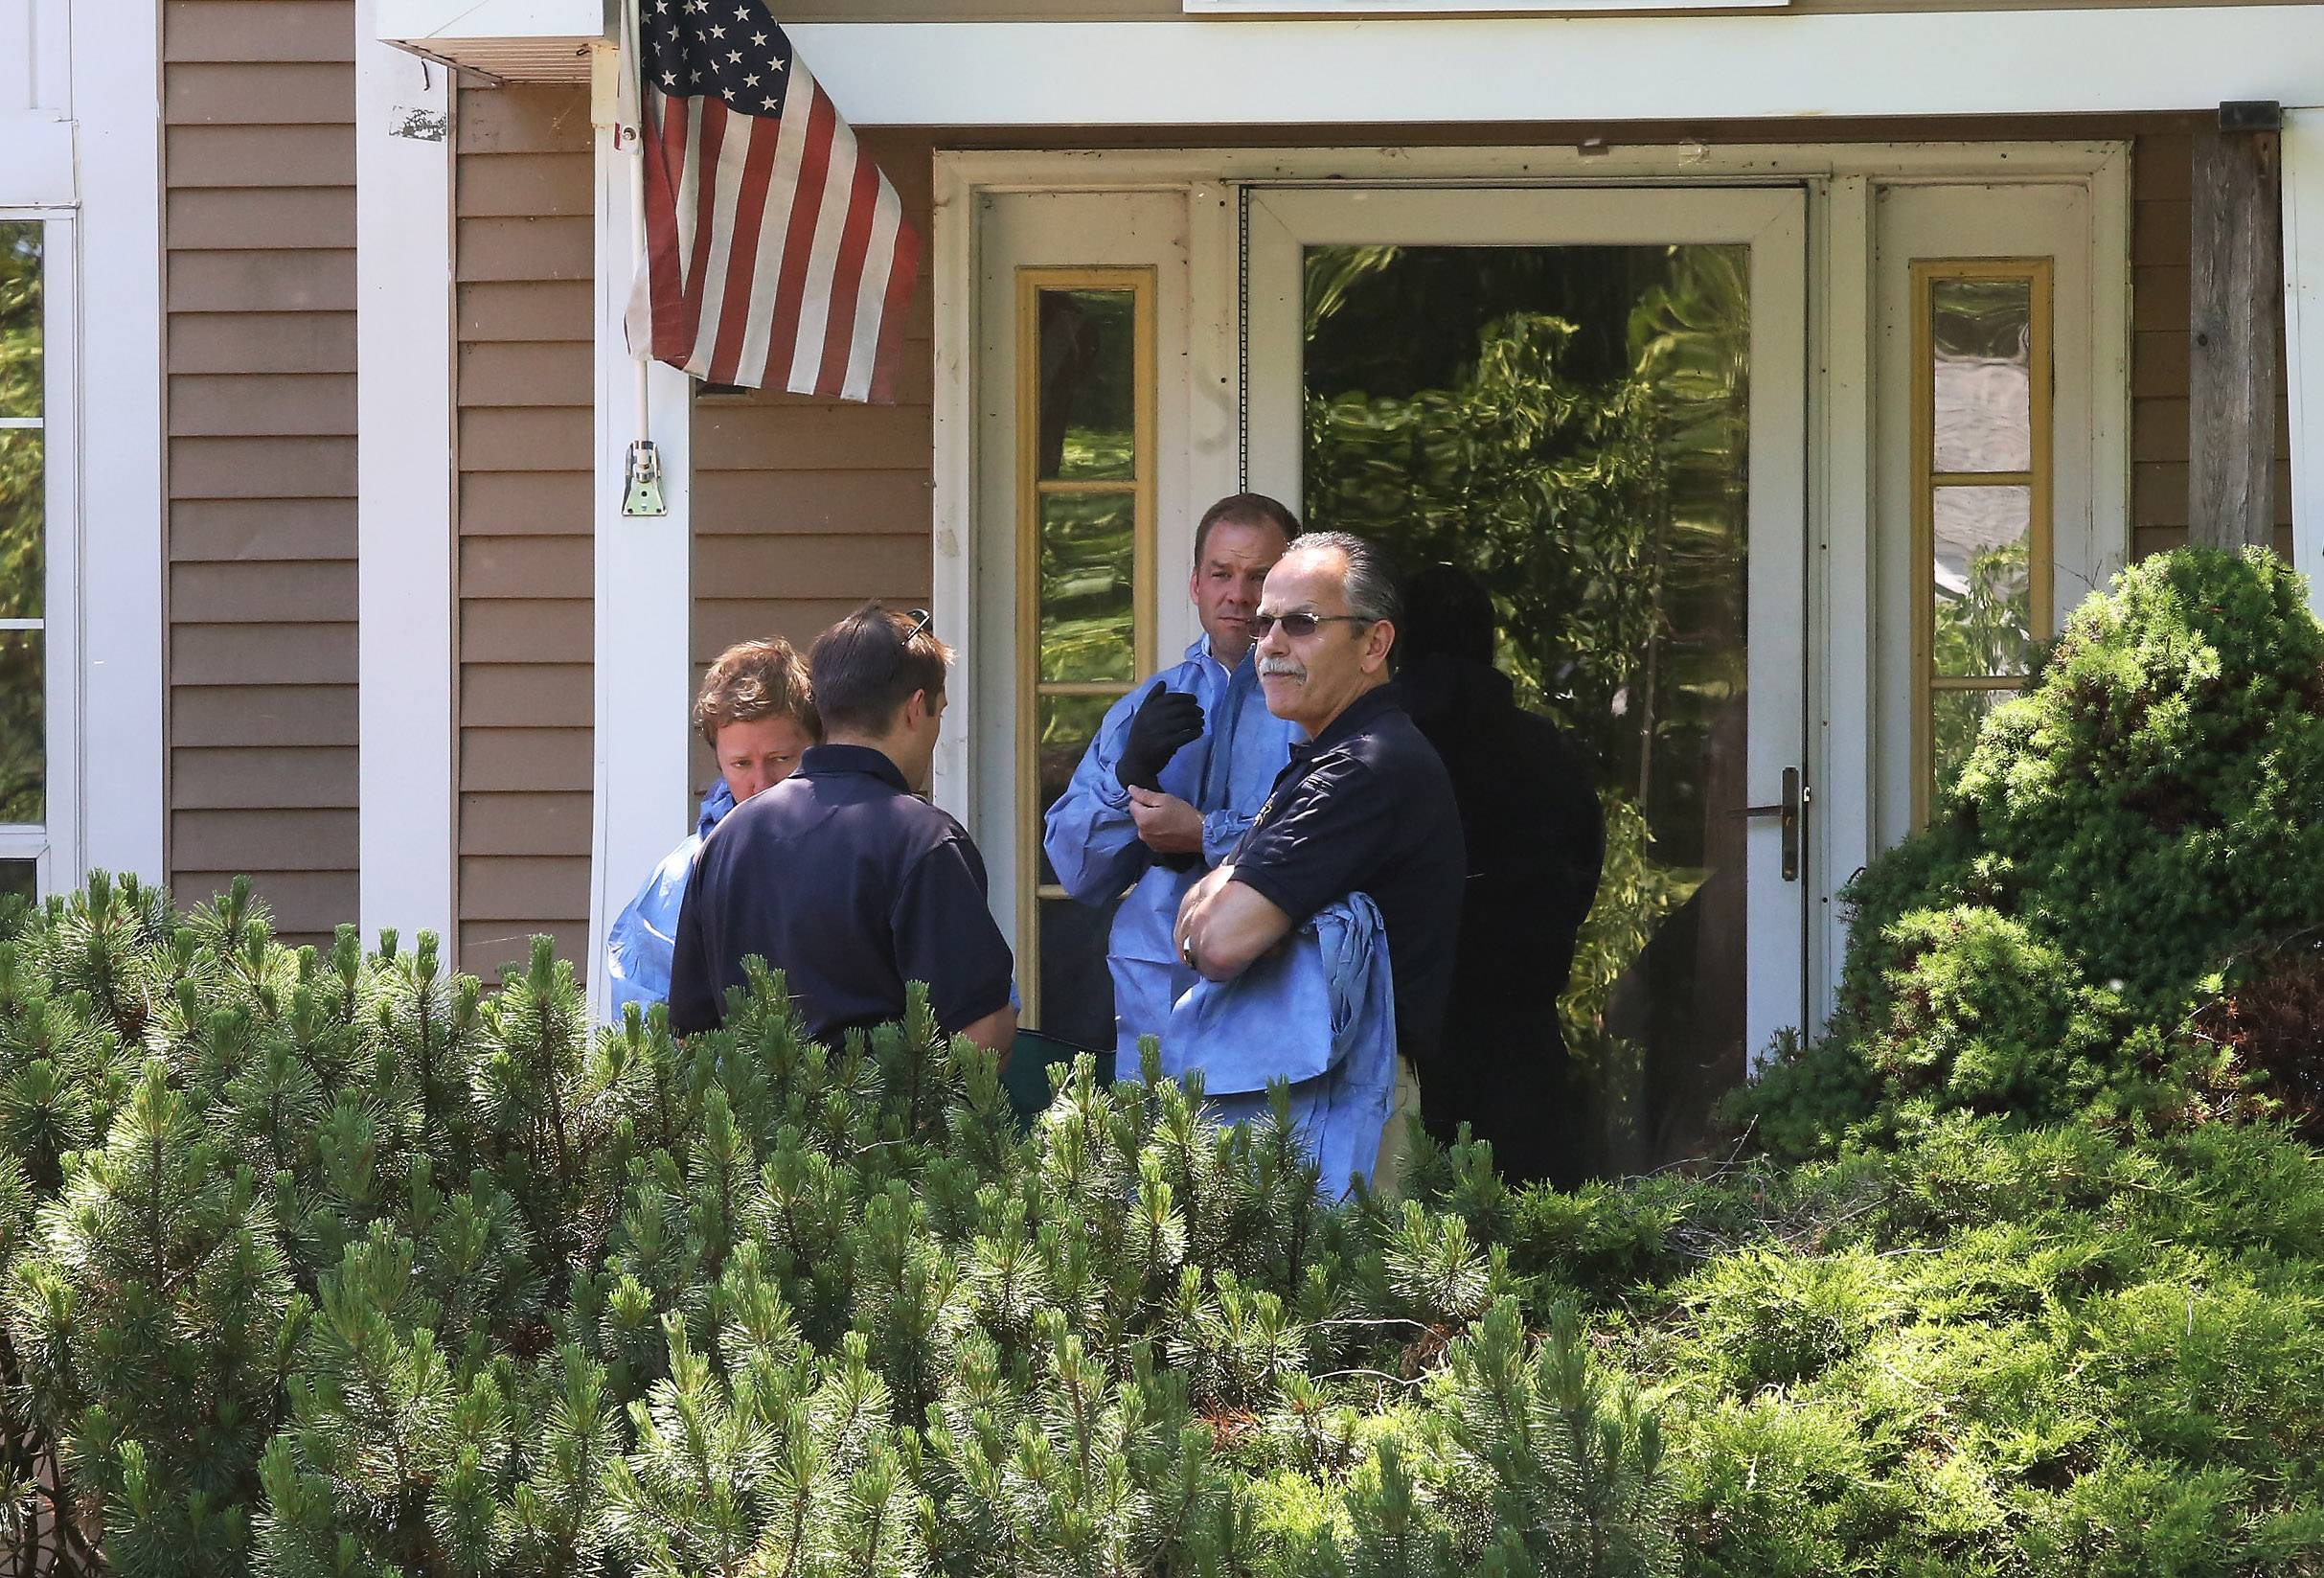 McHenry County sheriff's officials and Island Lake police investigate a death at a house in Island Lake on Tuesday.